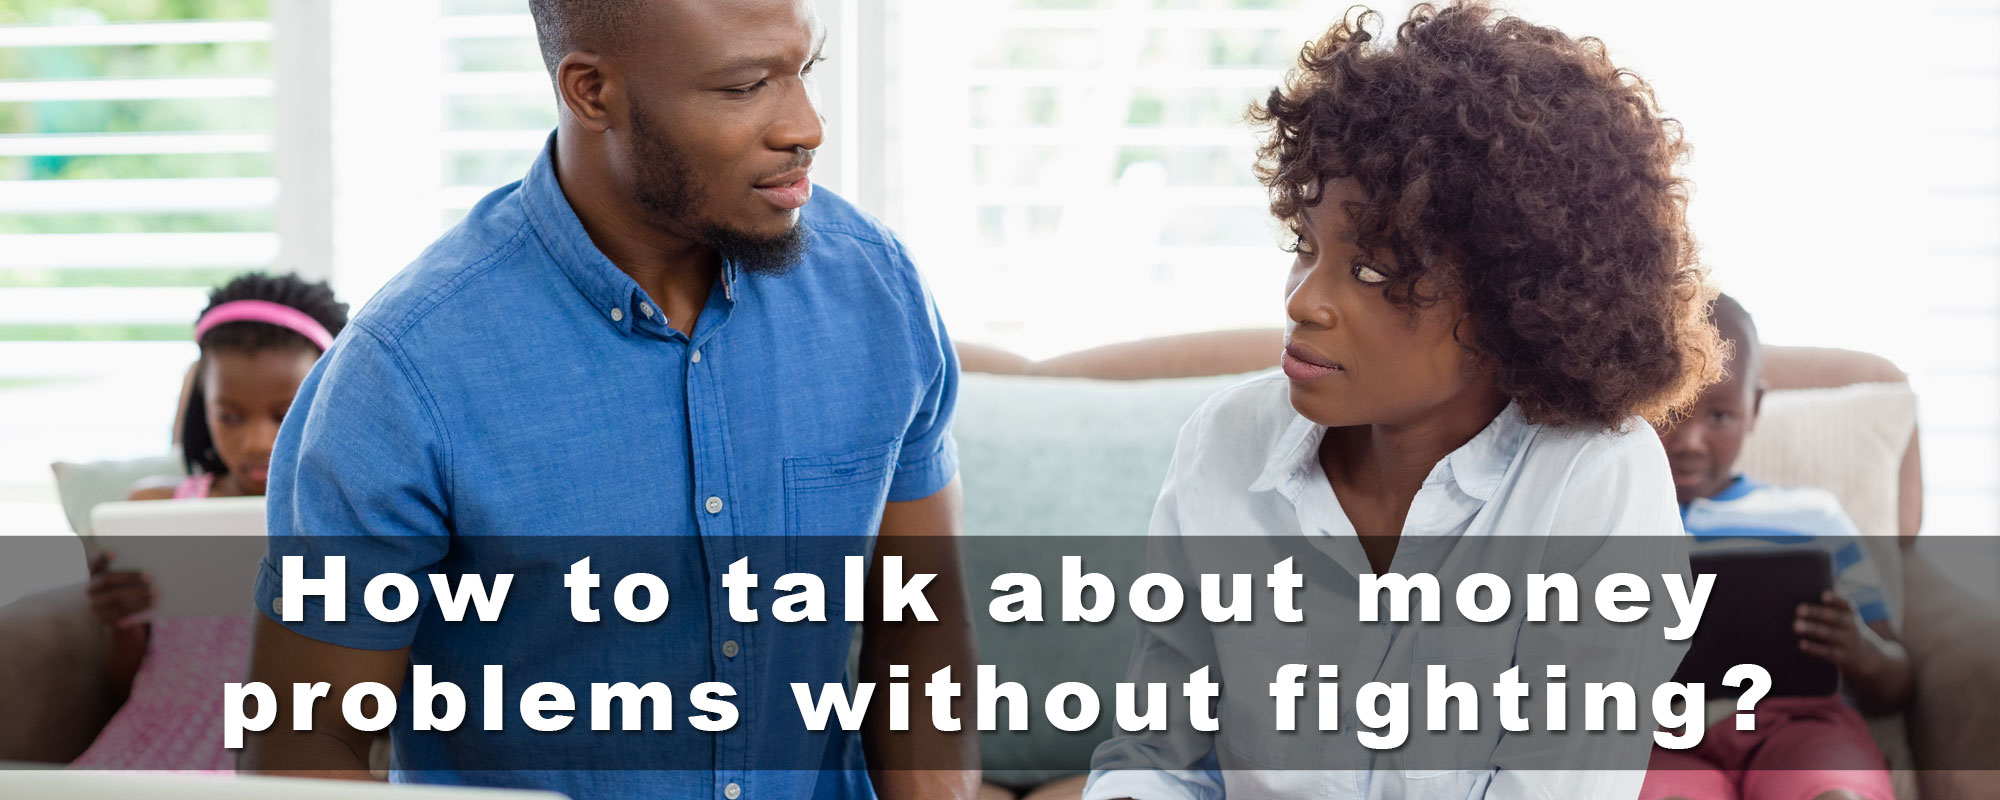 How to talk about money problems without fighting?